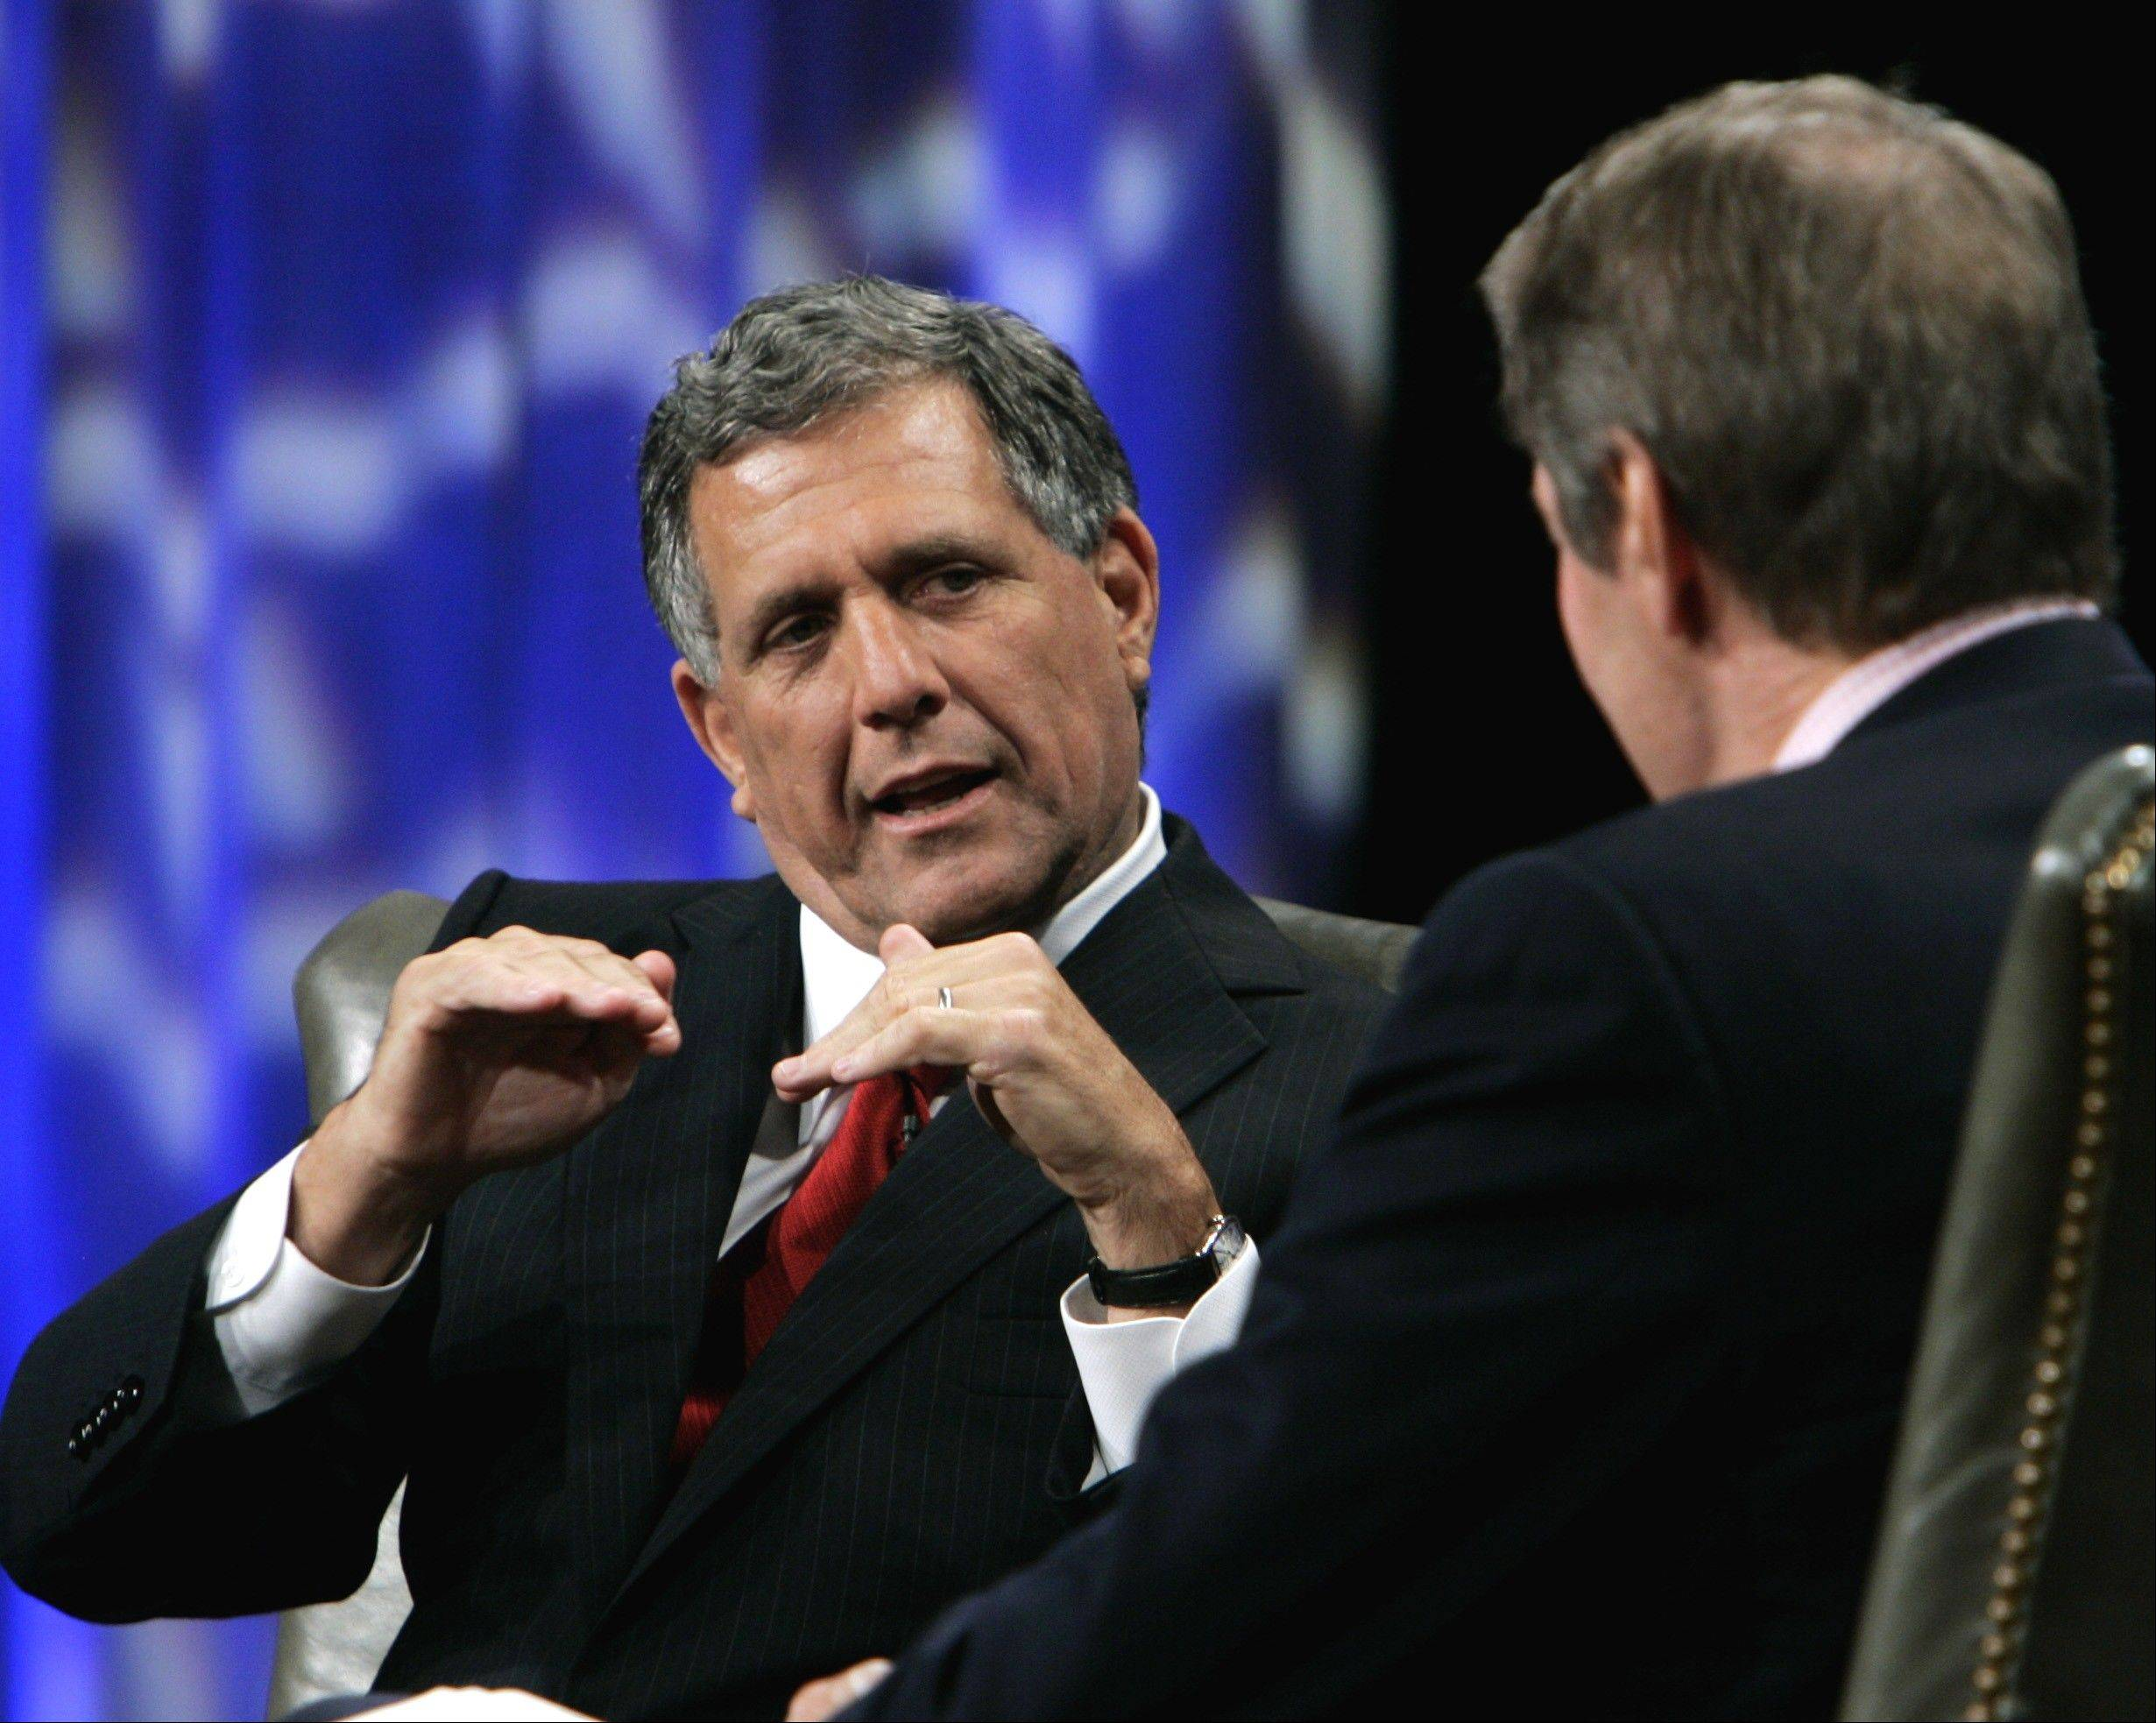 ASSOCIATED PRESSLeslie Moonves, left, president and chief executive officer of CBS, seen with PBS host Charlie Rose, was the highest paid CEO in 2012. He made $60.3 million.